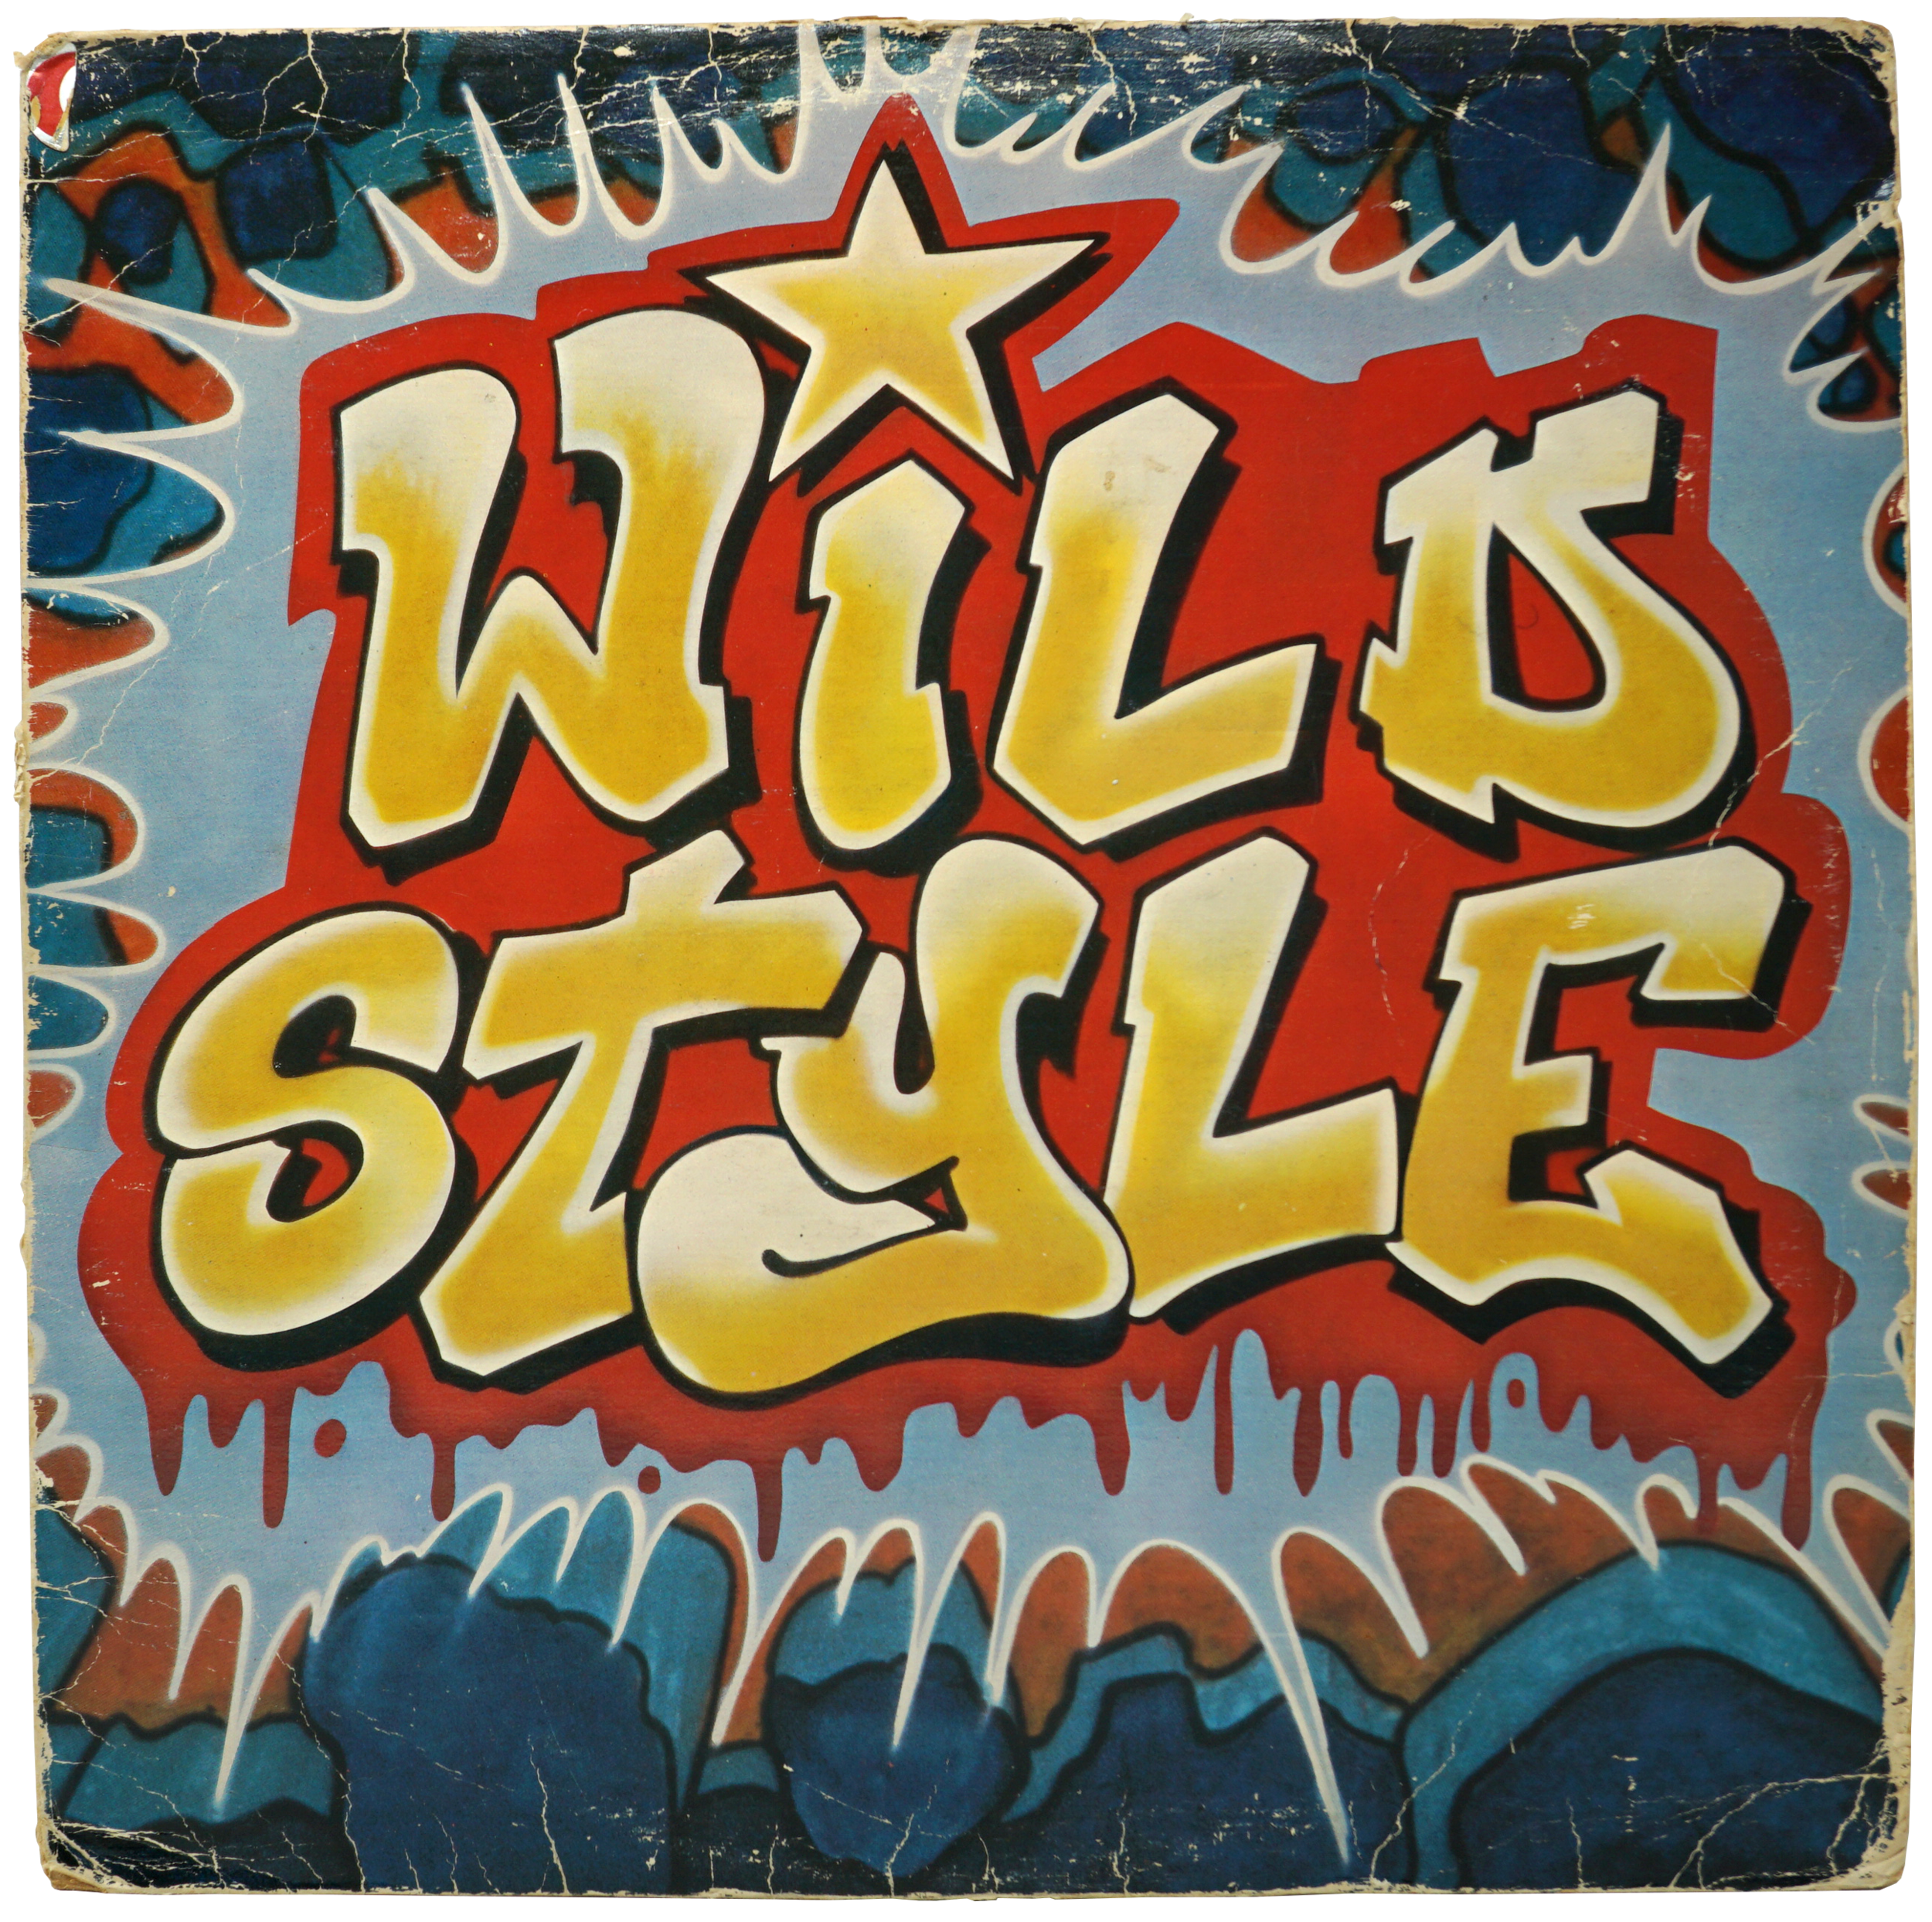 WLWLTDOO-1983-LP-WILD_STYLE-FRONT-APE 6005ST.png